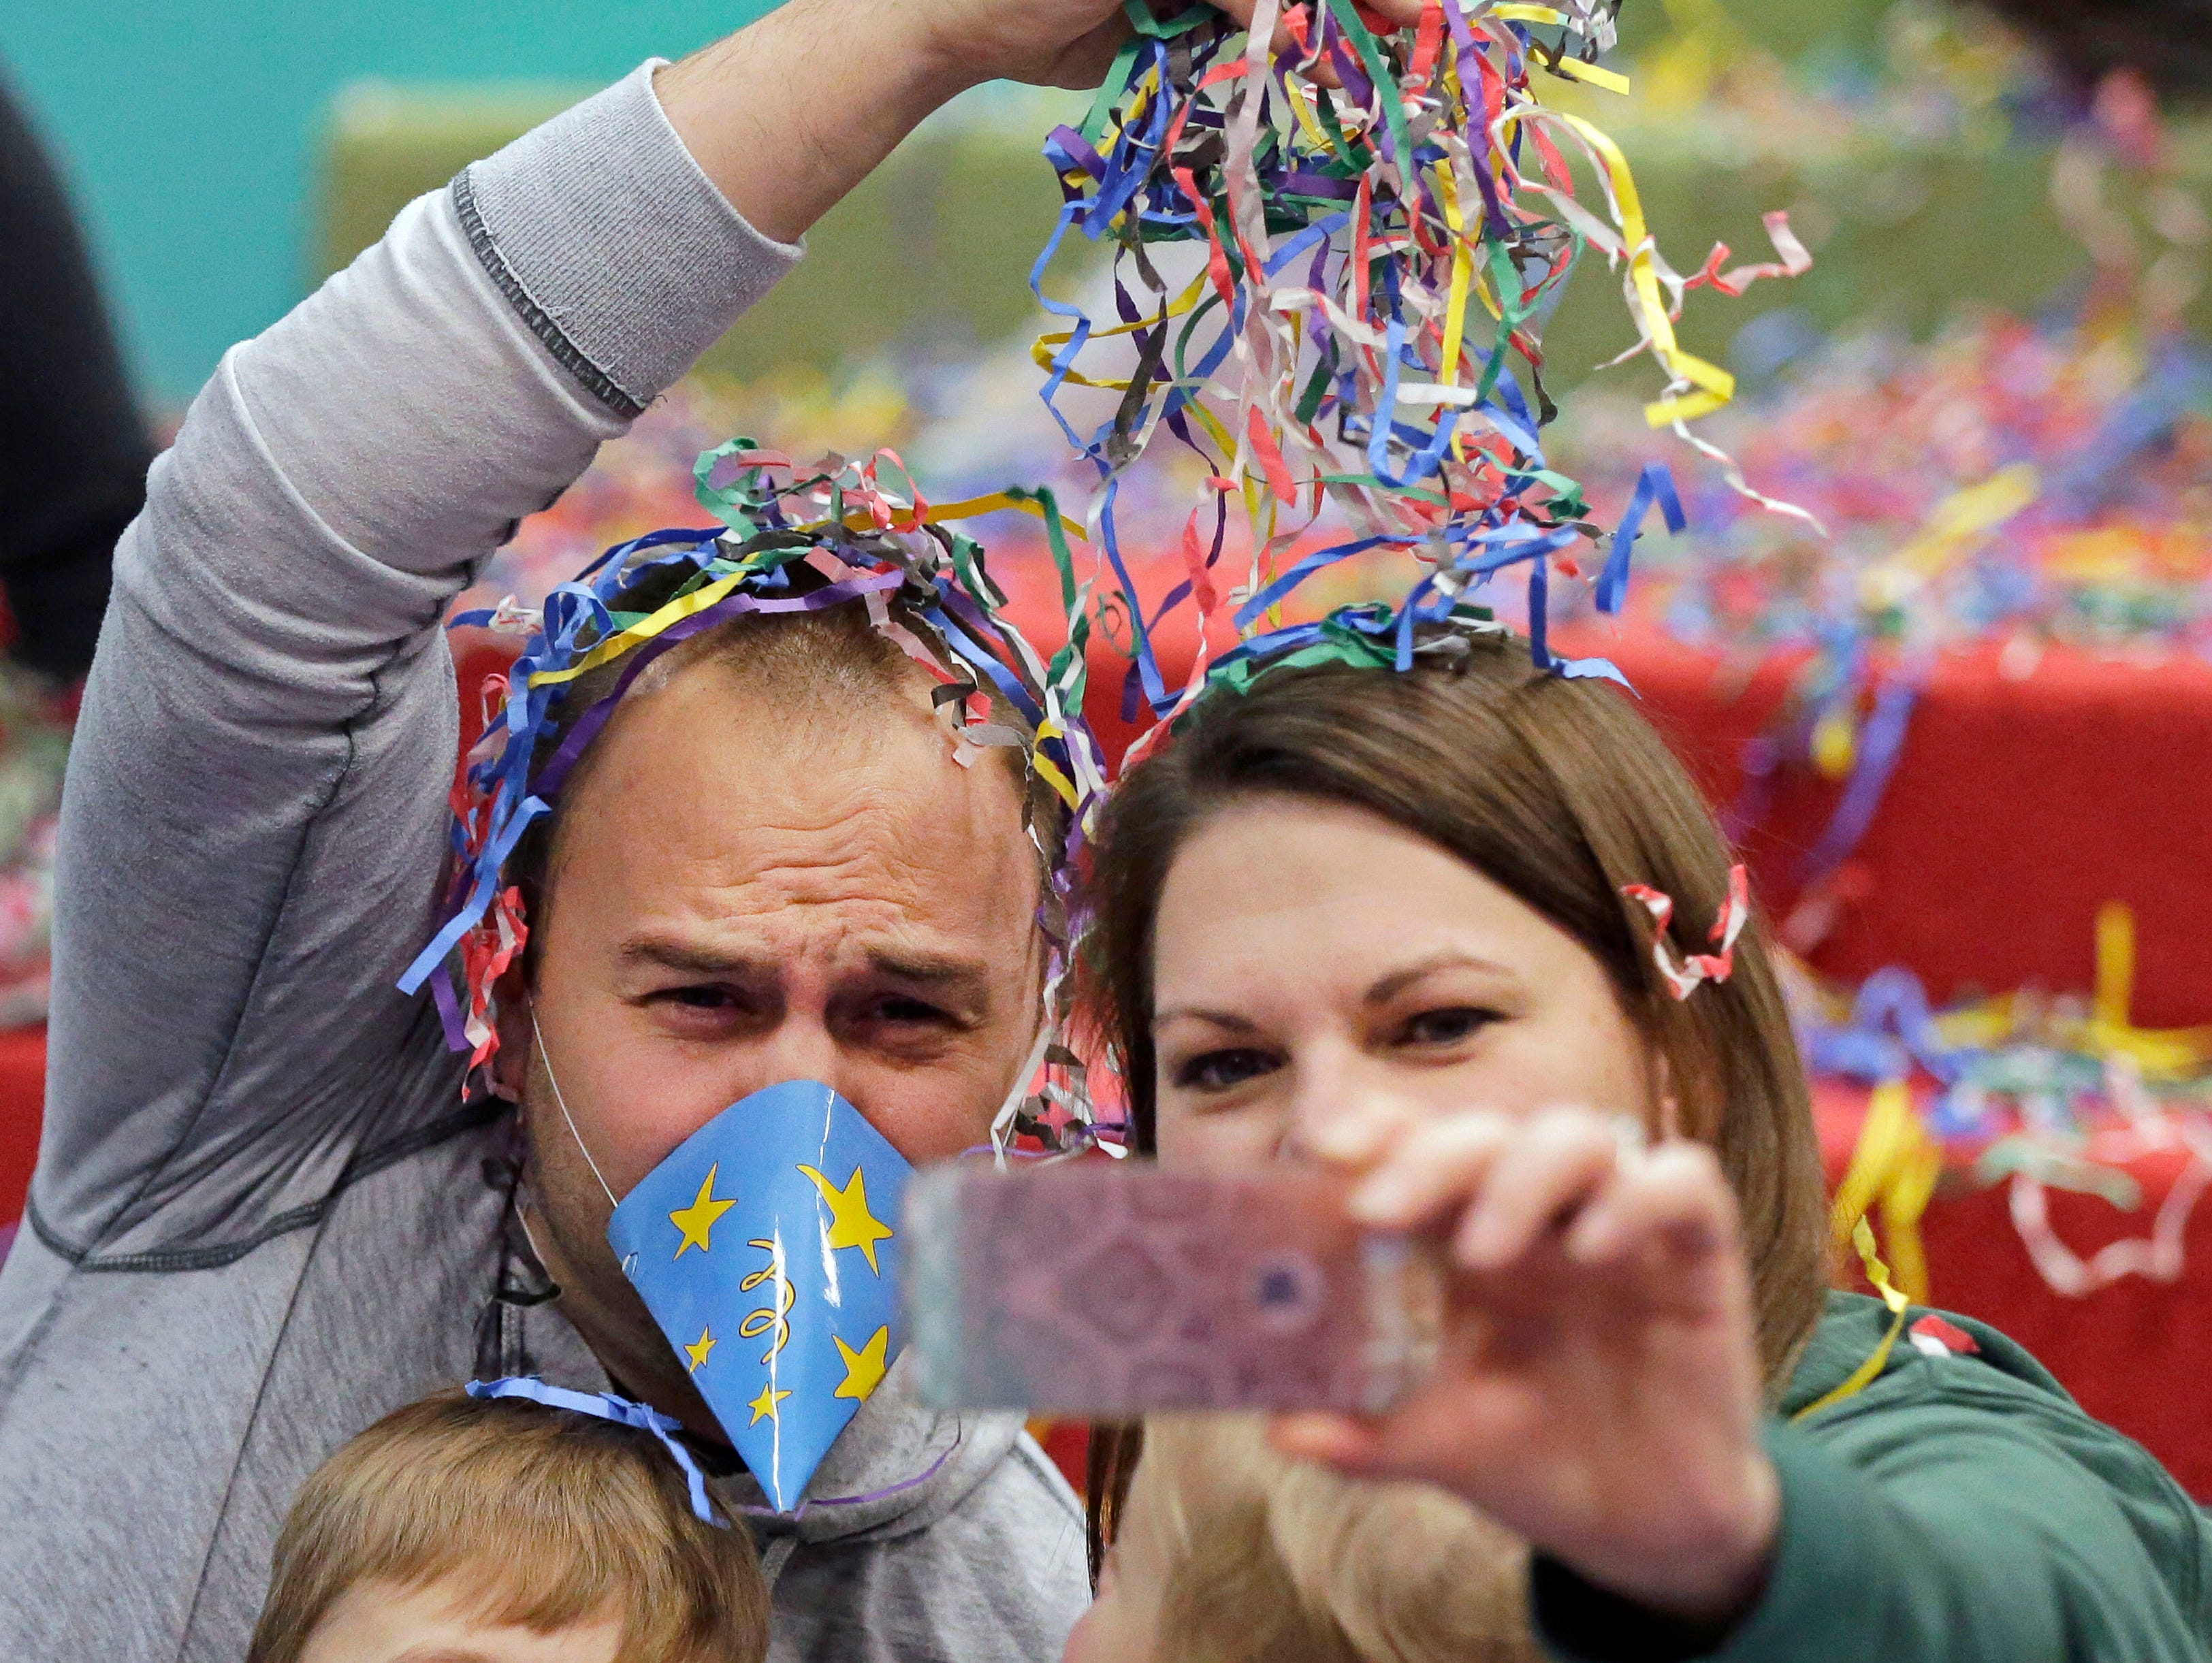 Jeff and Amanda Braunreiter of Appleton get a photo with their children Jack and Emerson following the Noodles Around the World New Year's Eve celebration at The Building for Kids Children's Museum Sunday, December 31, 2017, in Appleton, Wis.